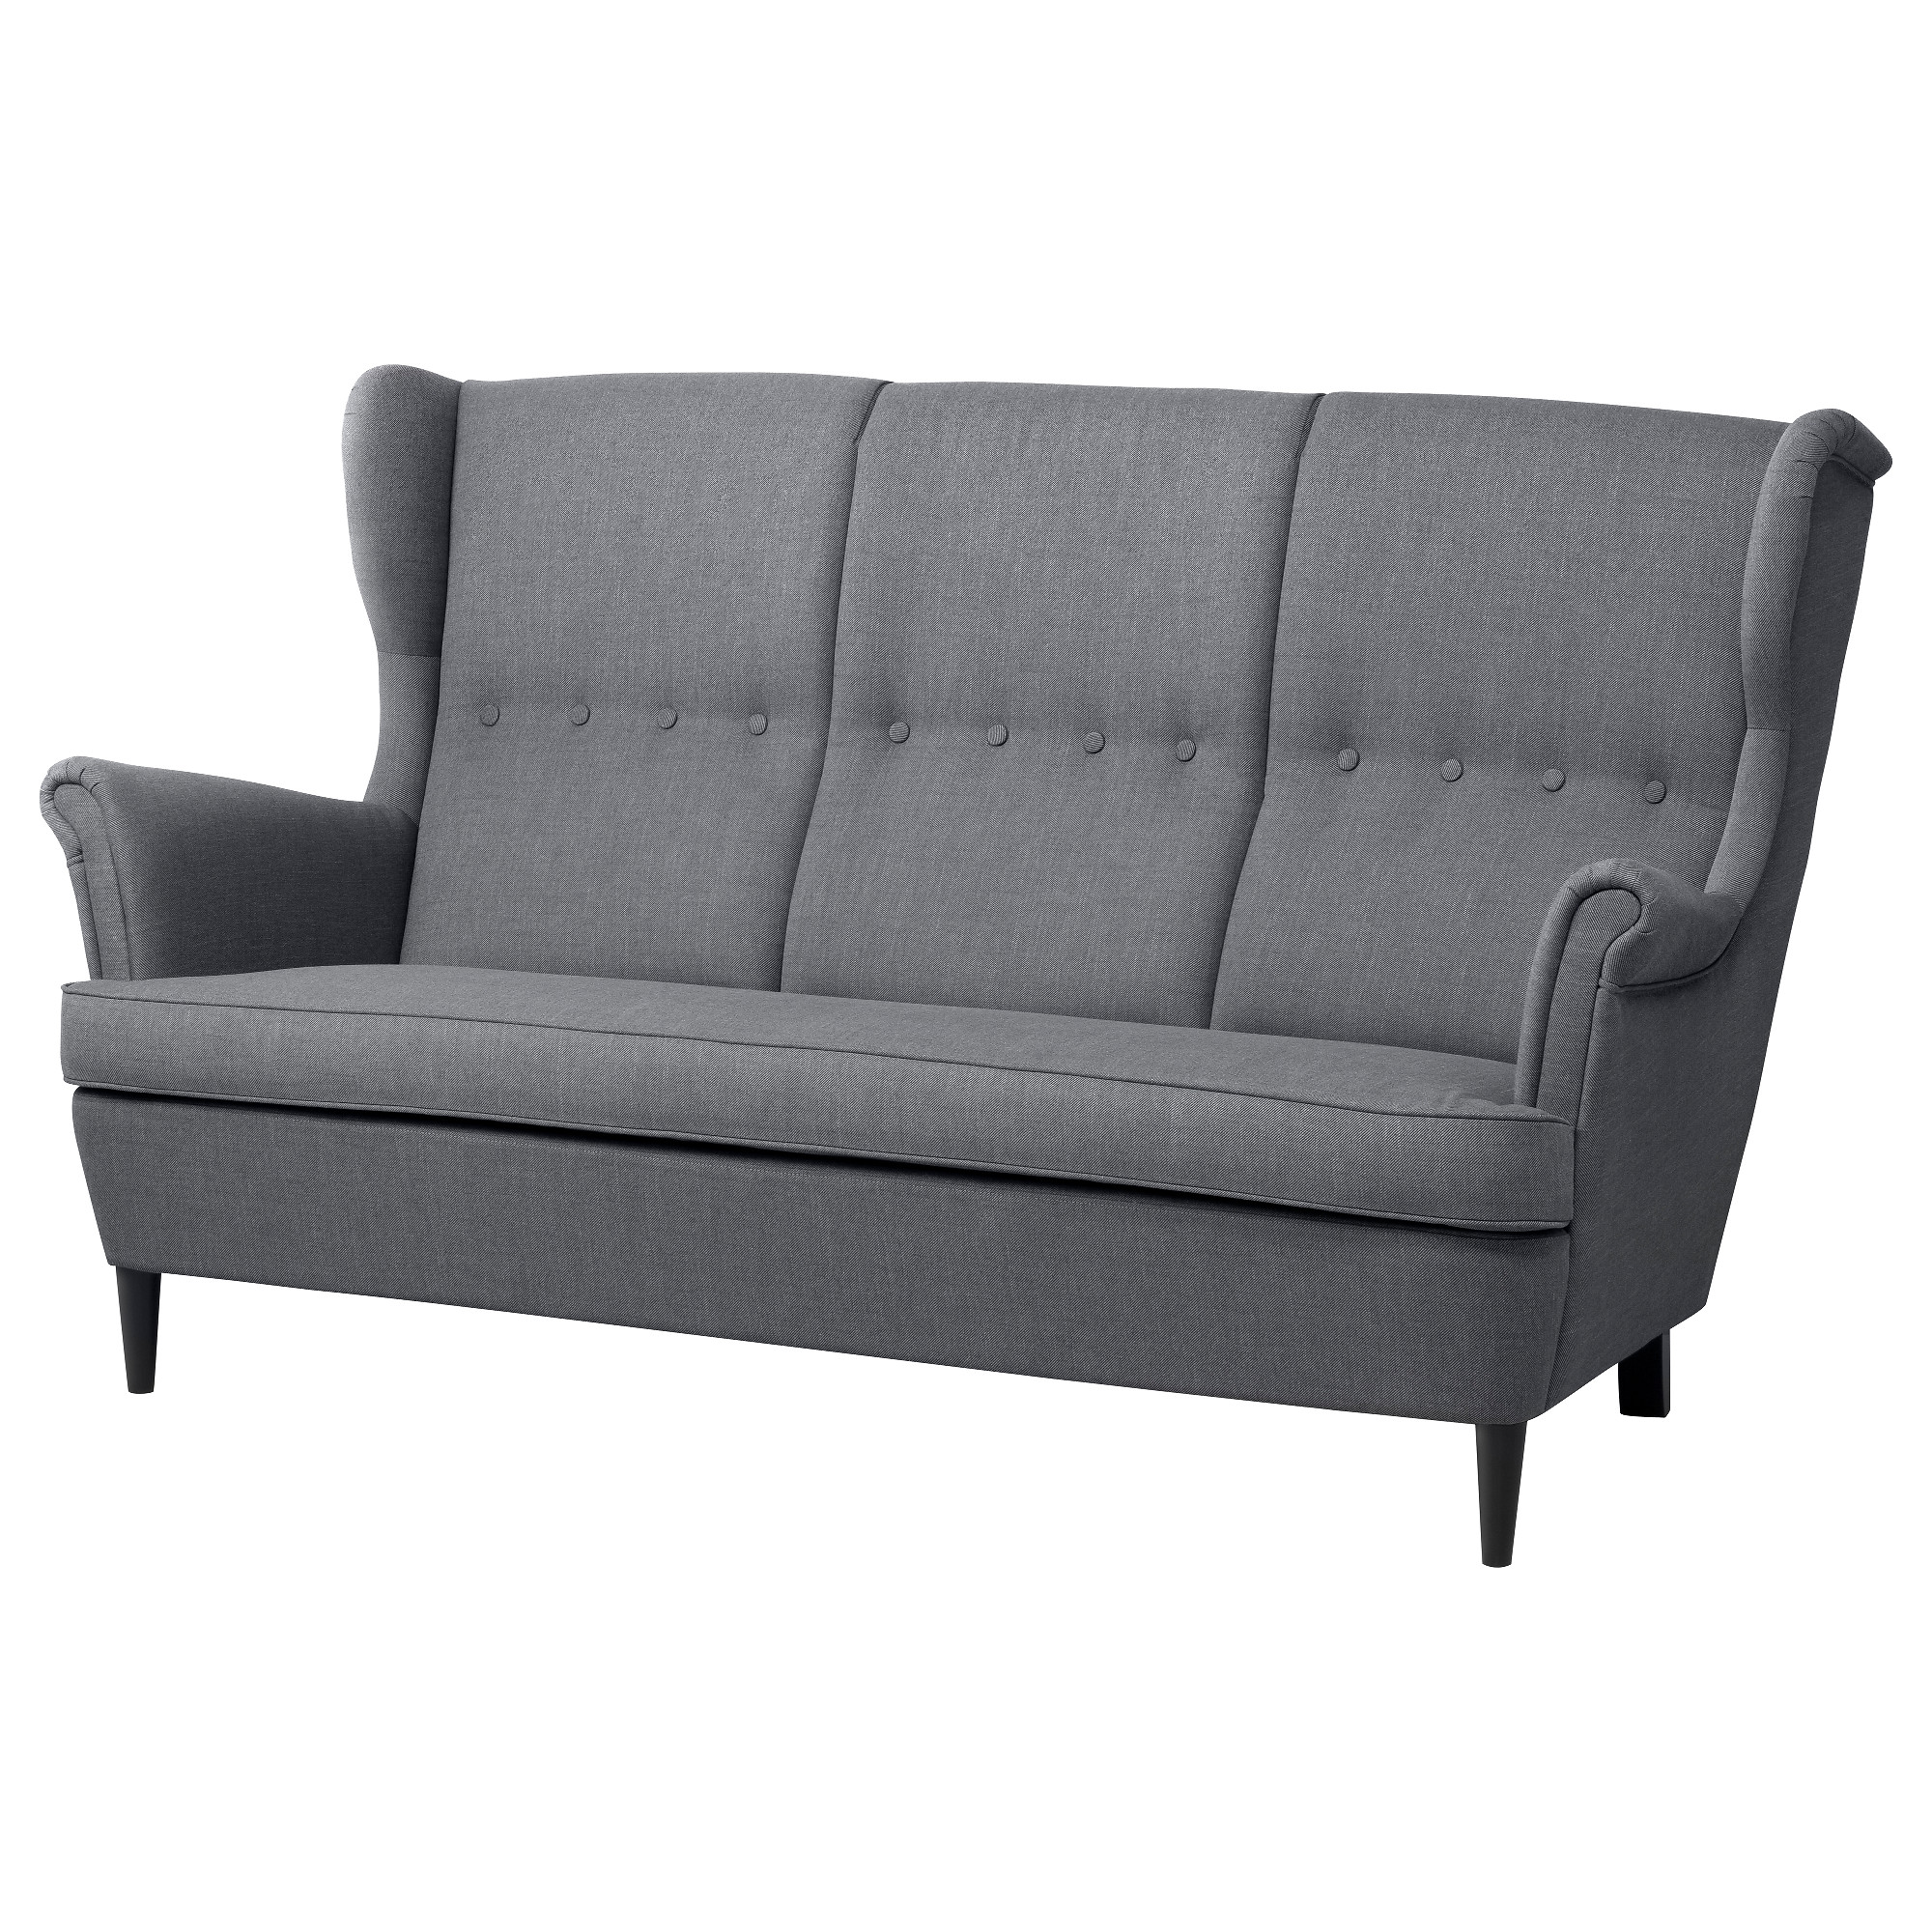 Billig sofaer trendy hans j wegner personers sofa model for Billige sofas gebraucht